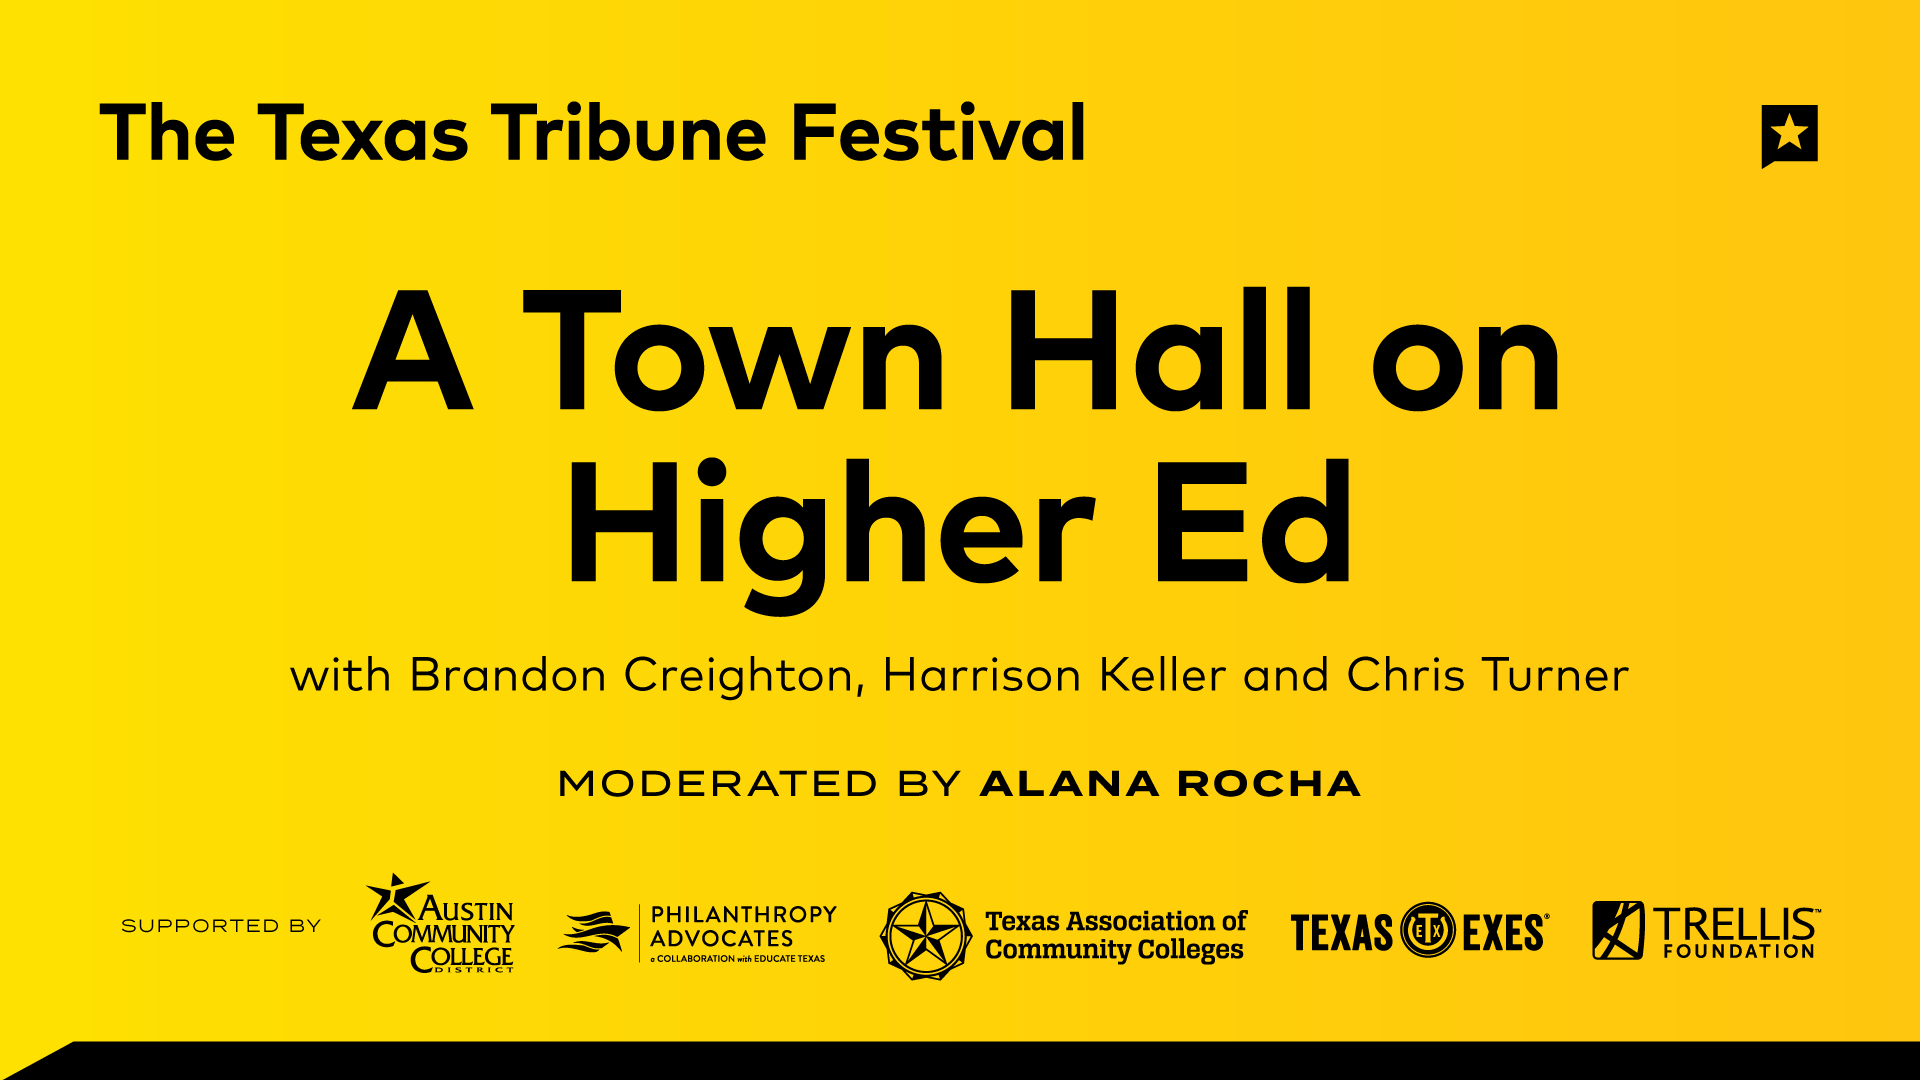 A Town Hall on Higher Ed